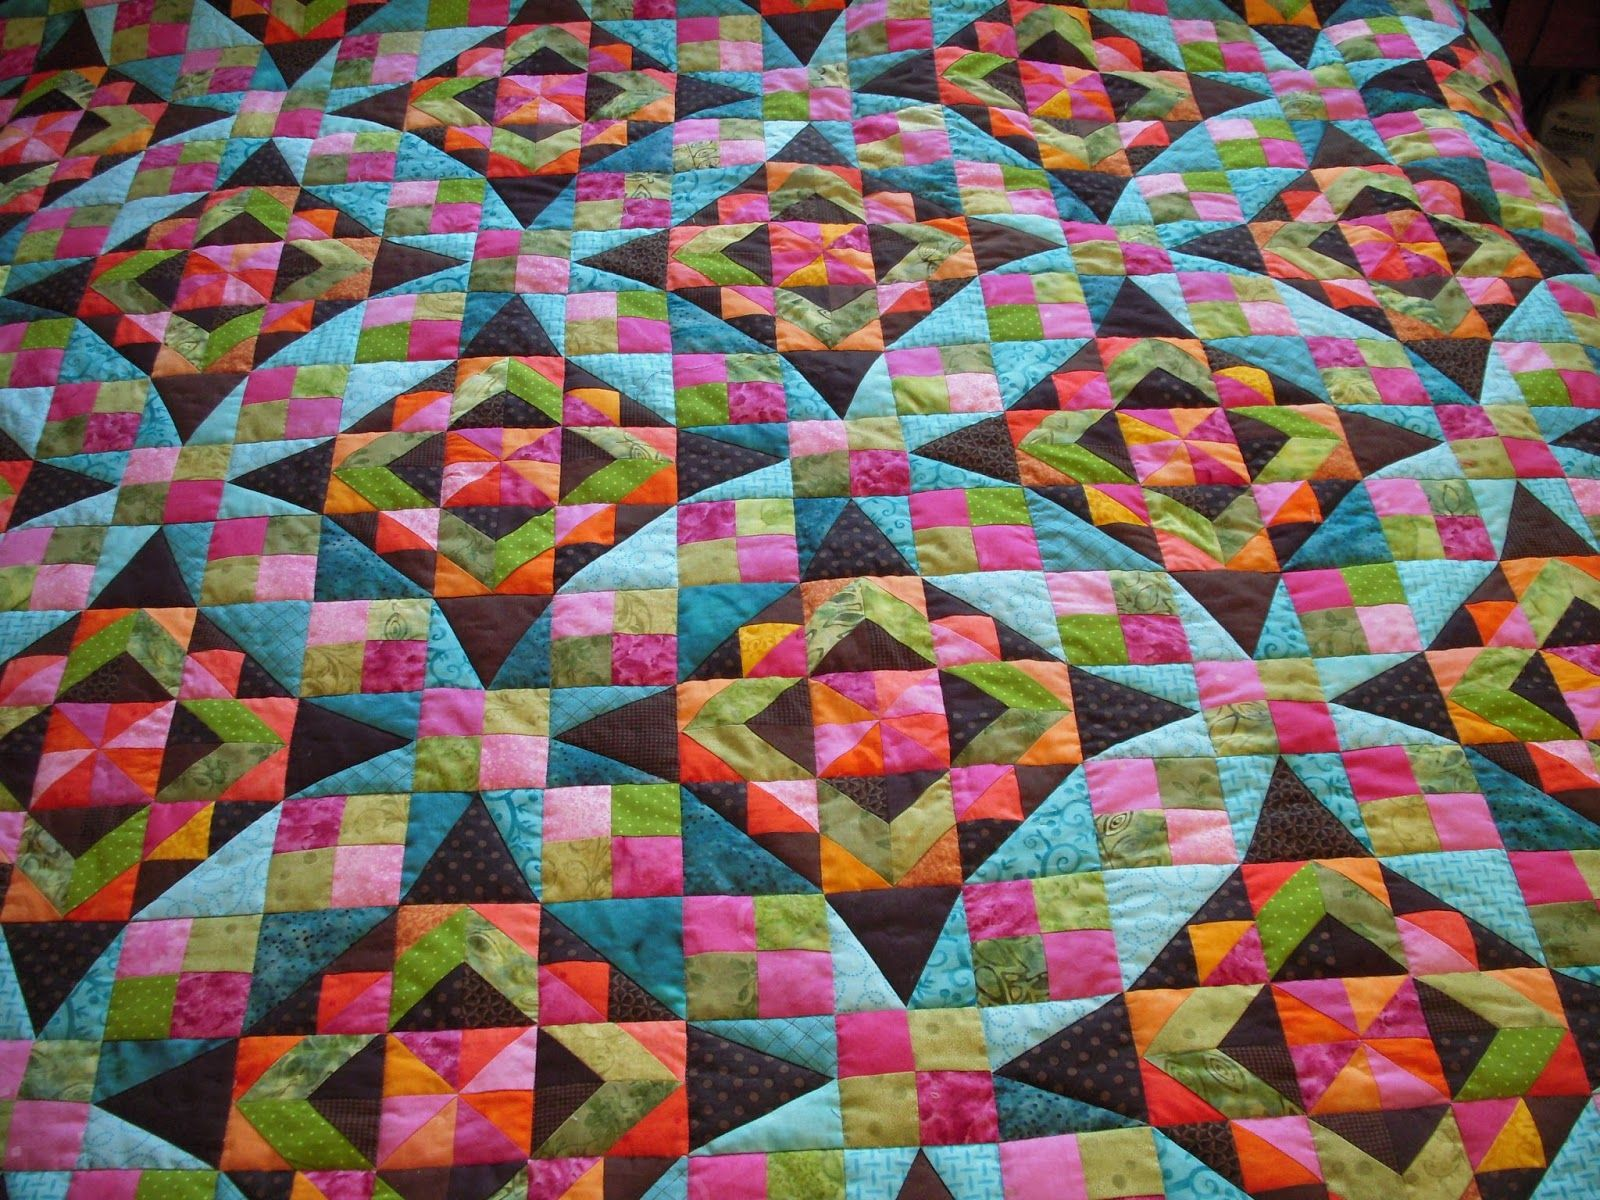 Aftermath Quilting Summer Solstice Bonnie Hunter Mystery Bonnie Hunter Scrap Quilts Bonnie Hunter Quilts